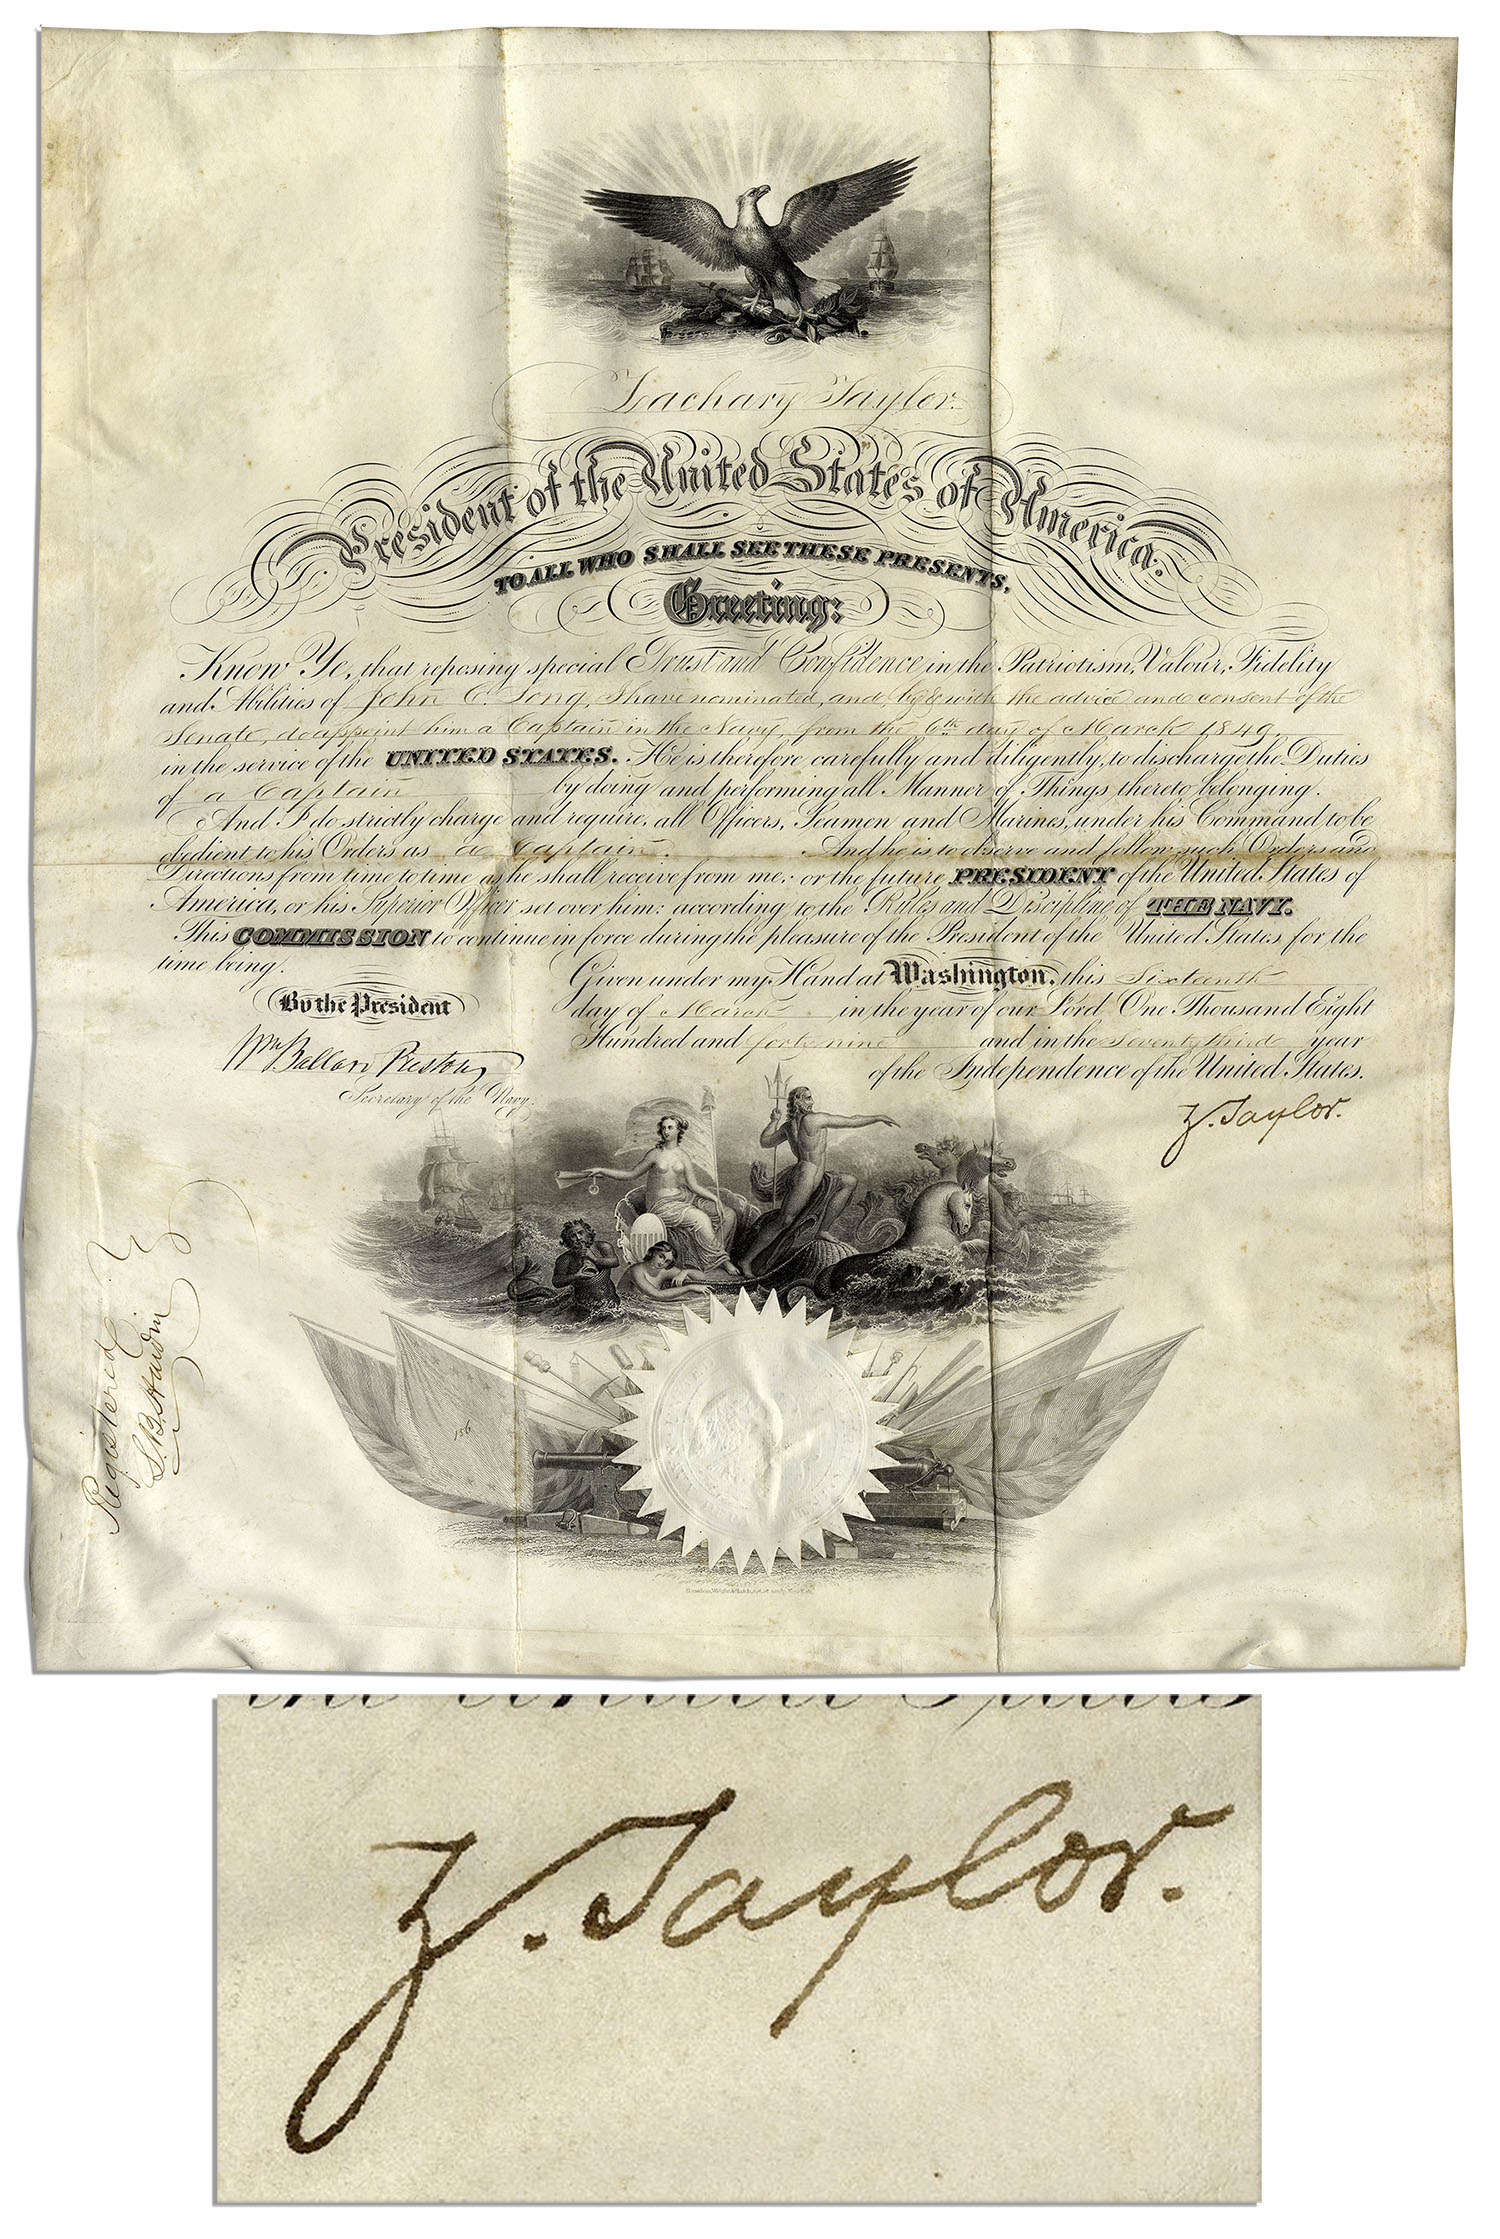 Zachary Taylor Autograph Zachary Taylor Naval Appointment Signed as President -- Just a Week After Taking Office